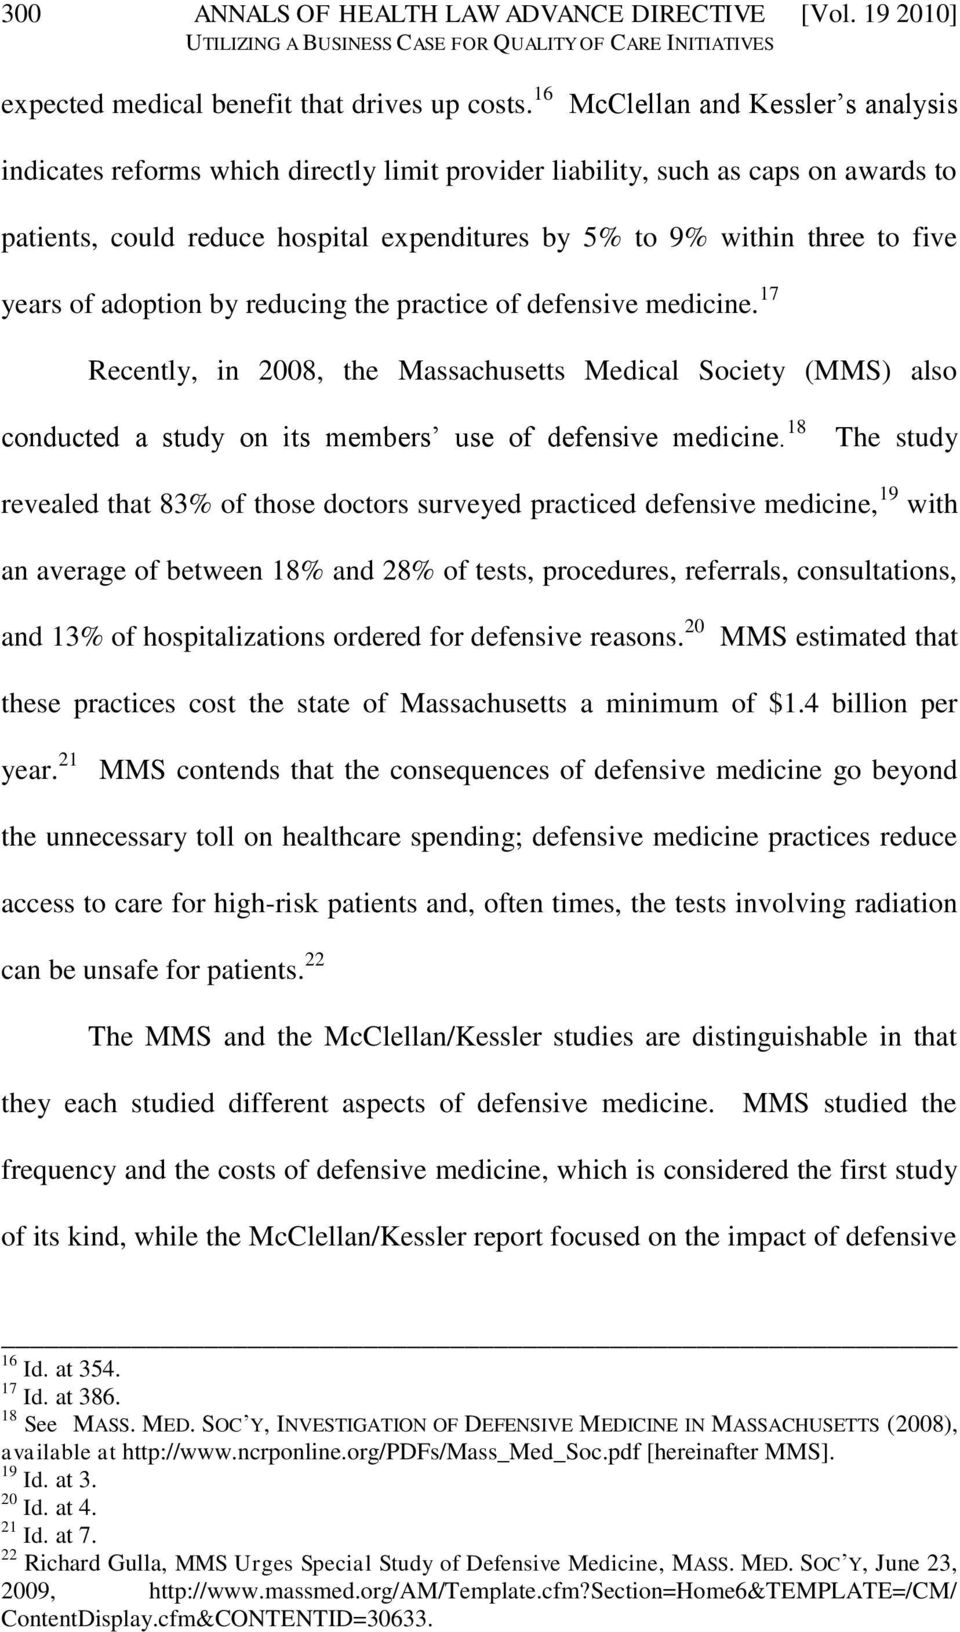 years of adoption by reducing the practice of defensive medicine. 17 Recently, in 2008, the Massachusetts Medical Society (MMS) also conducted a study on its members use of defensive medicine.